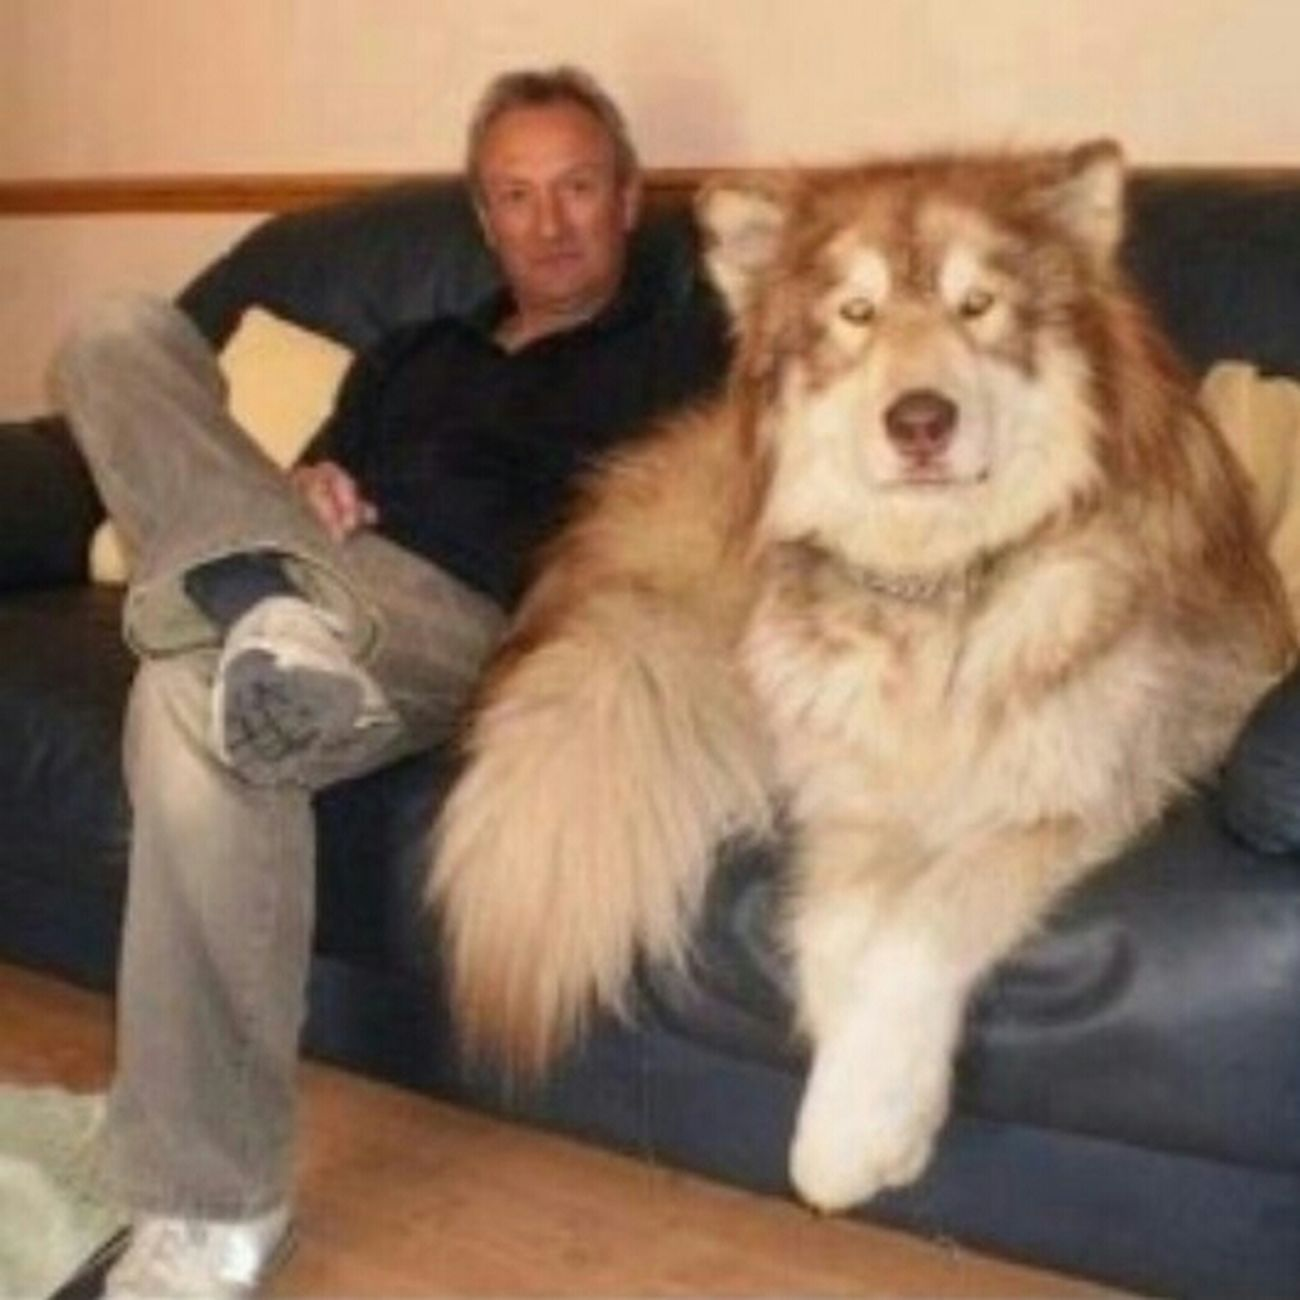 WTF!? Big Fuccin Dog